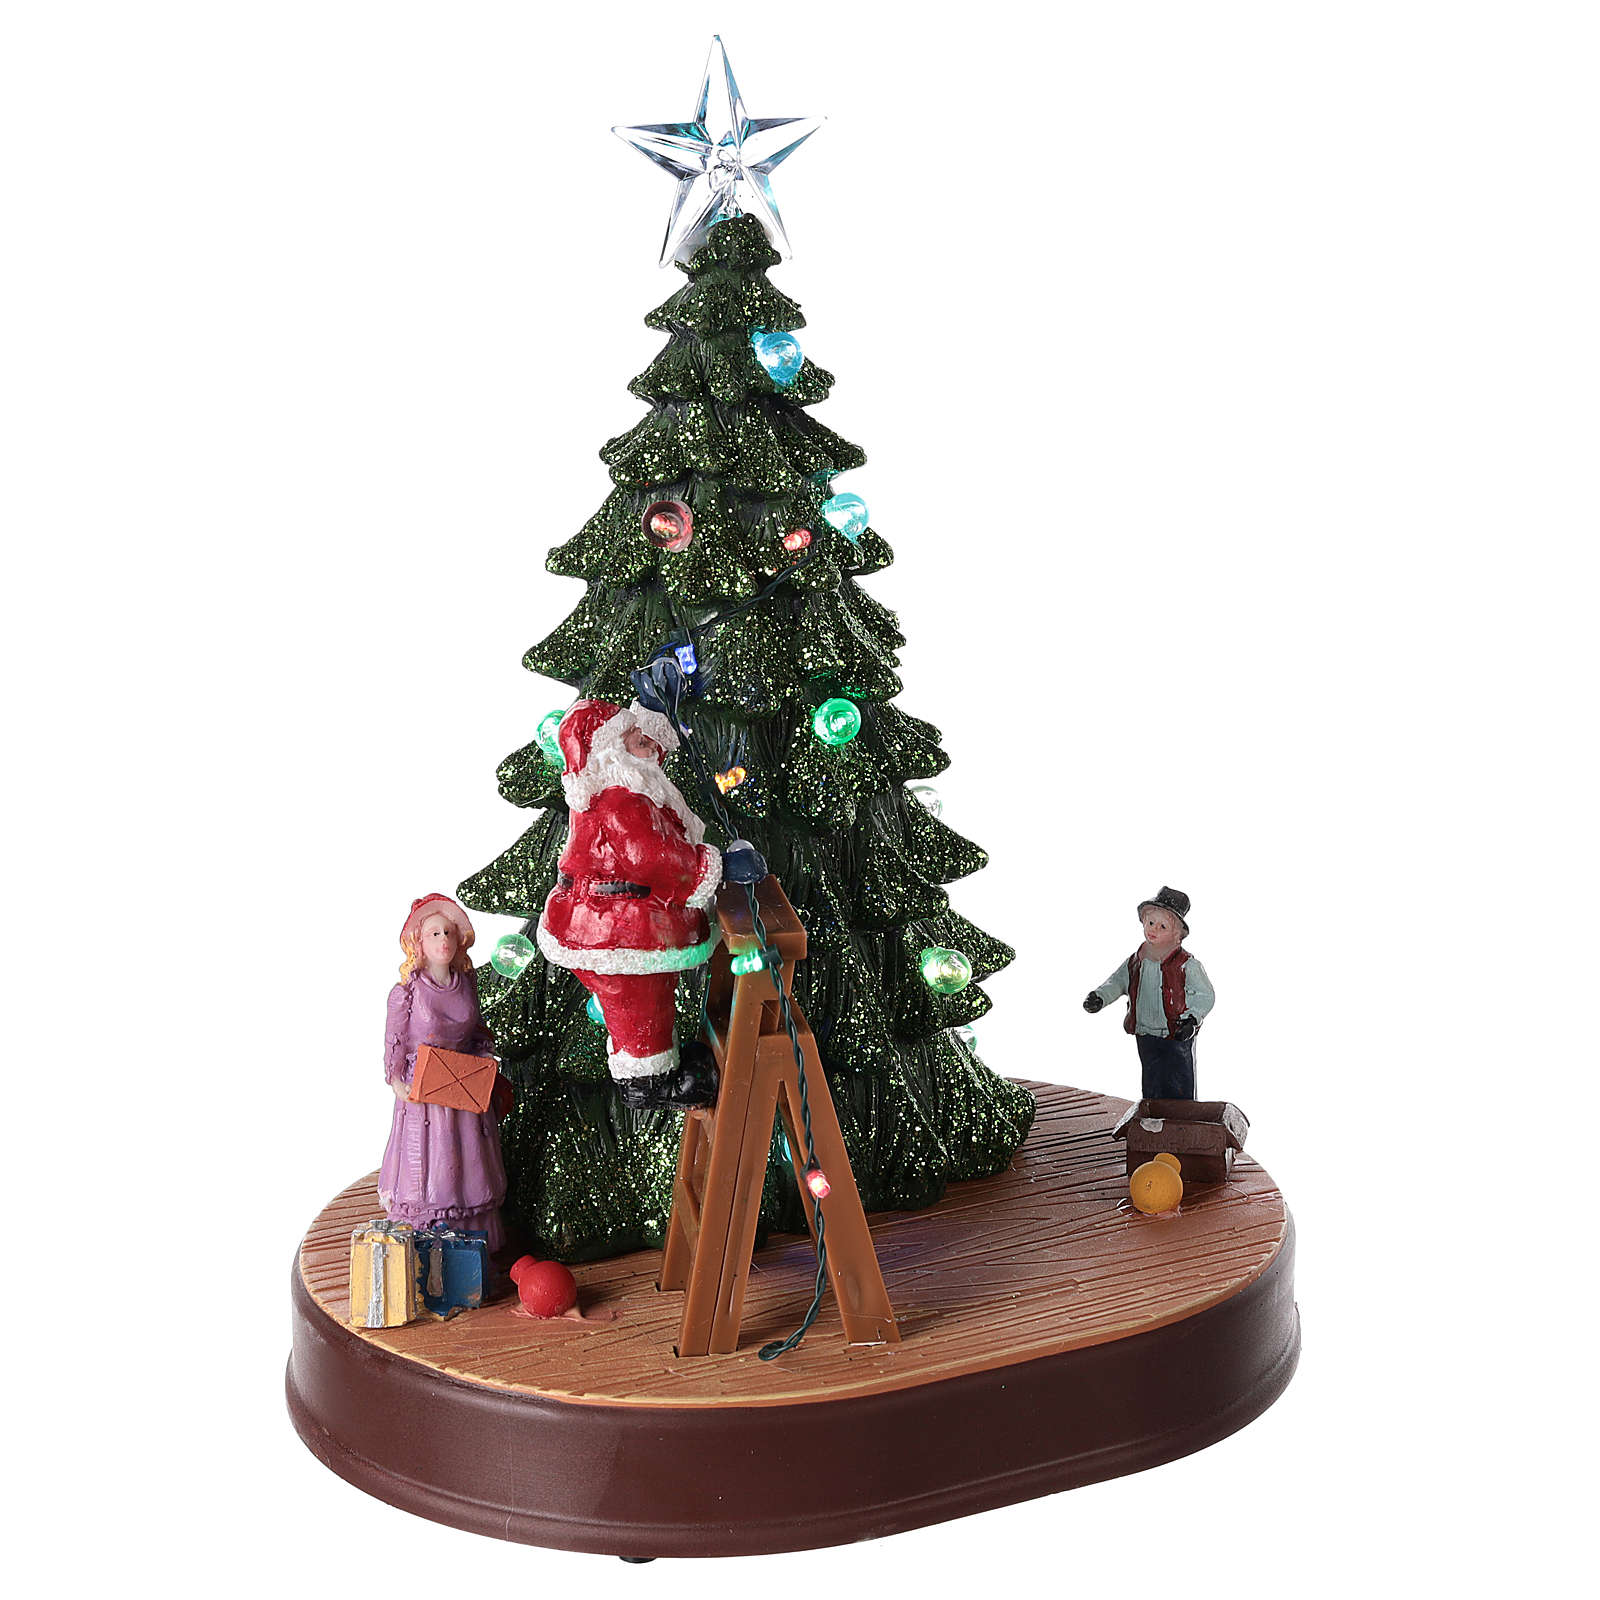 Santa Claus with tree for village with music and lighting 30x25x20 cm 3